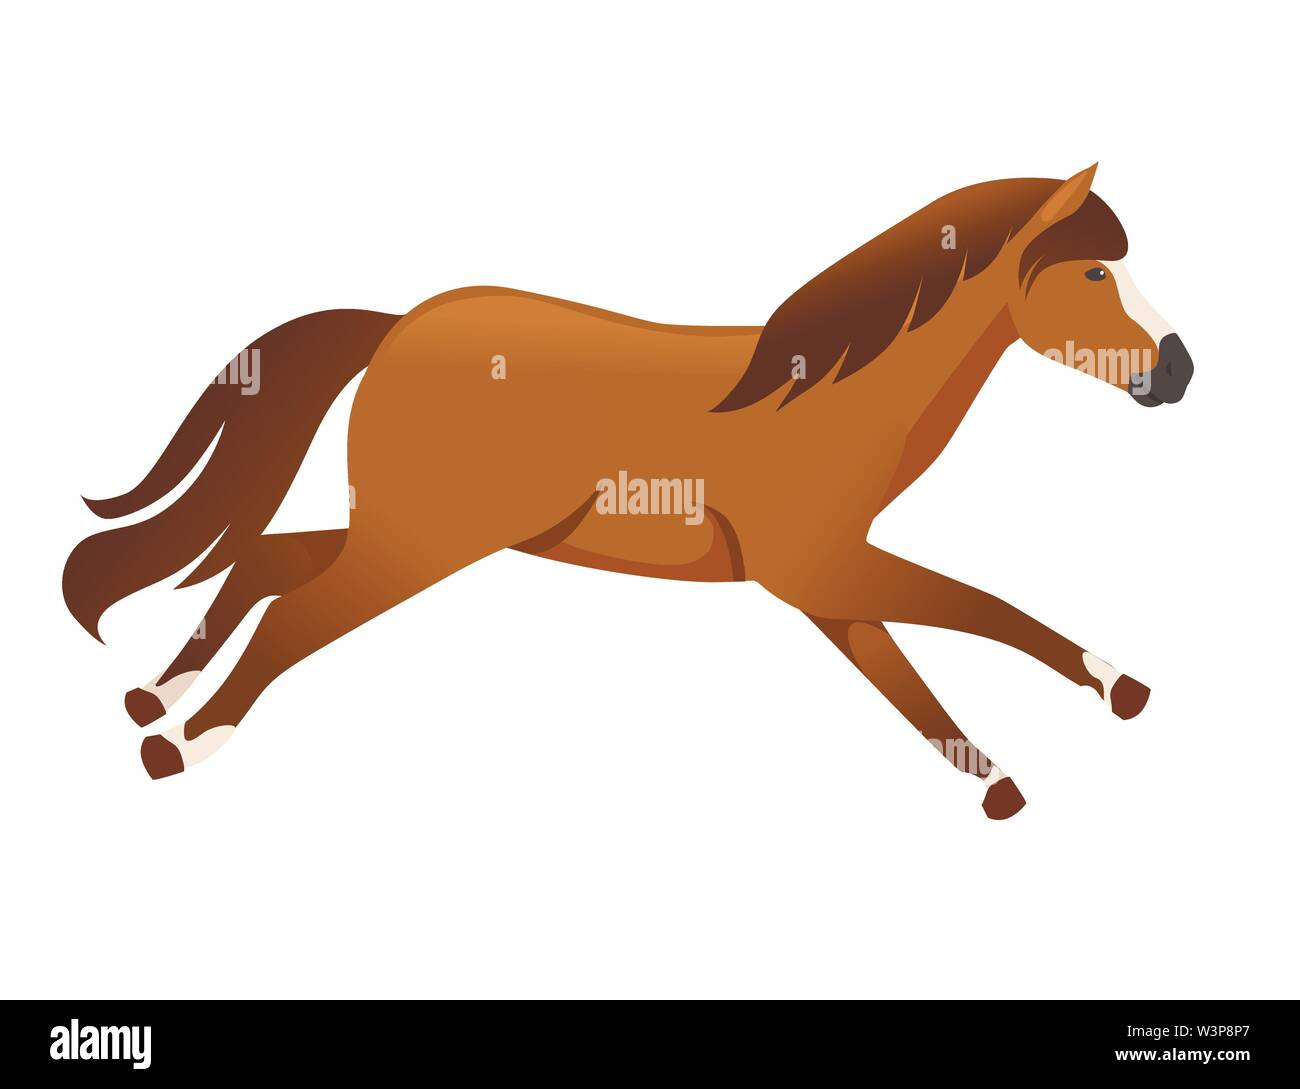 Brown Horse Wild Or Domestic Animal Running Cartoon Design Flat Vector Illustration Isolated On White Background Stock Vector Image Art Alamy